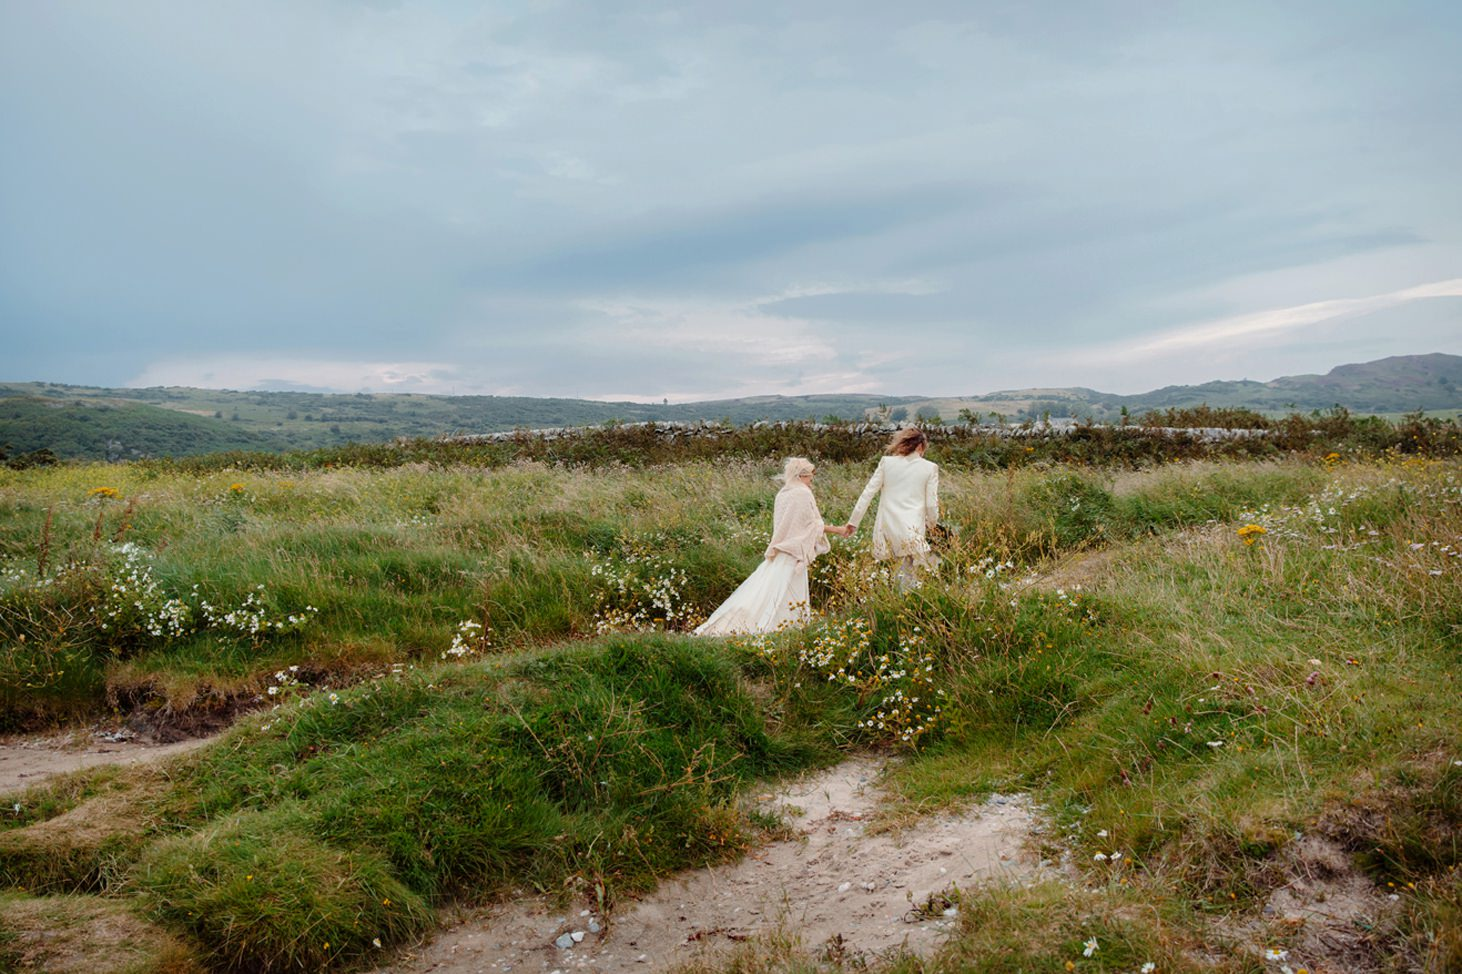 sle of bute wedding photography bride and groom walking through grass